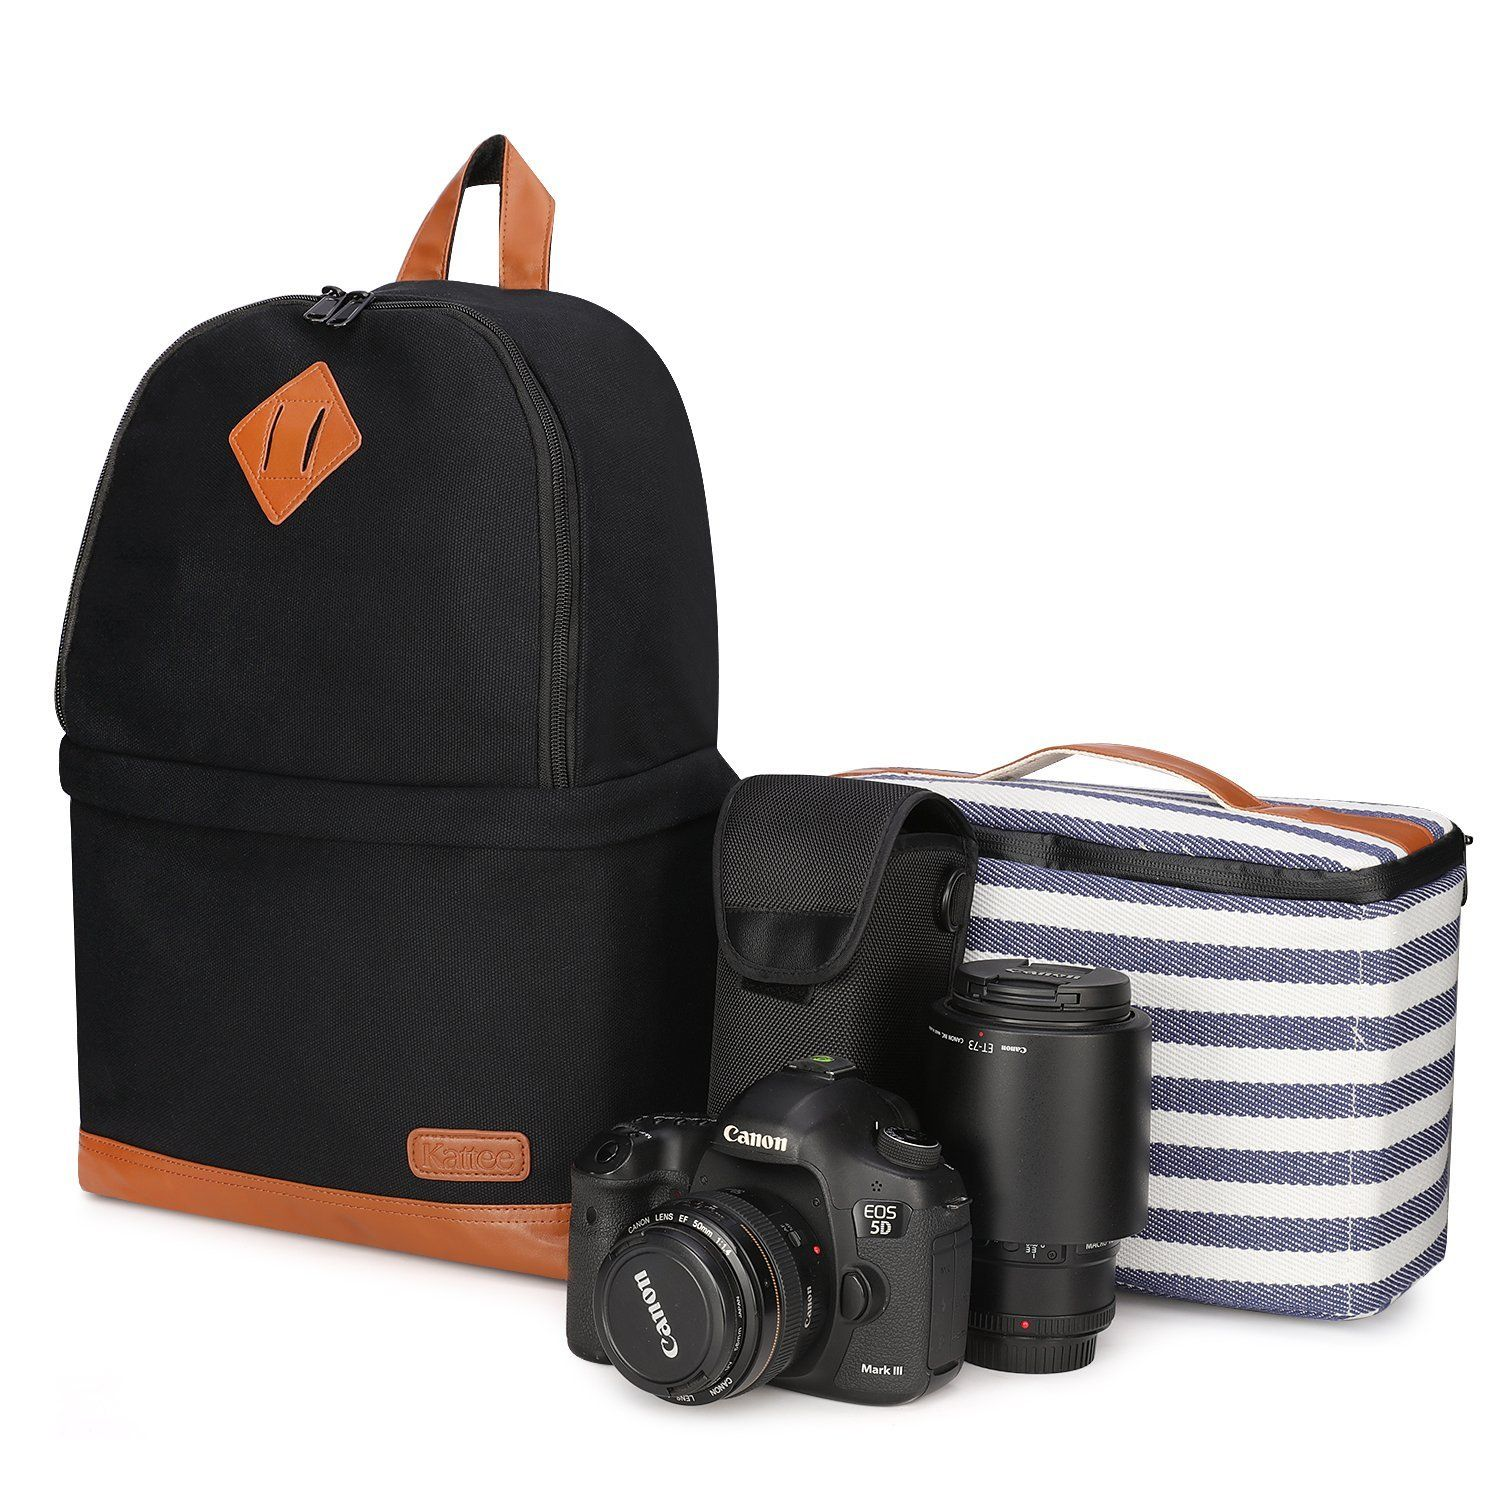 Size : Backpack+Tripod Multifunctional Camera Backpack Fashionable Photo Video Bag Case with Large Capacity for SLR DSLR Camera